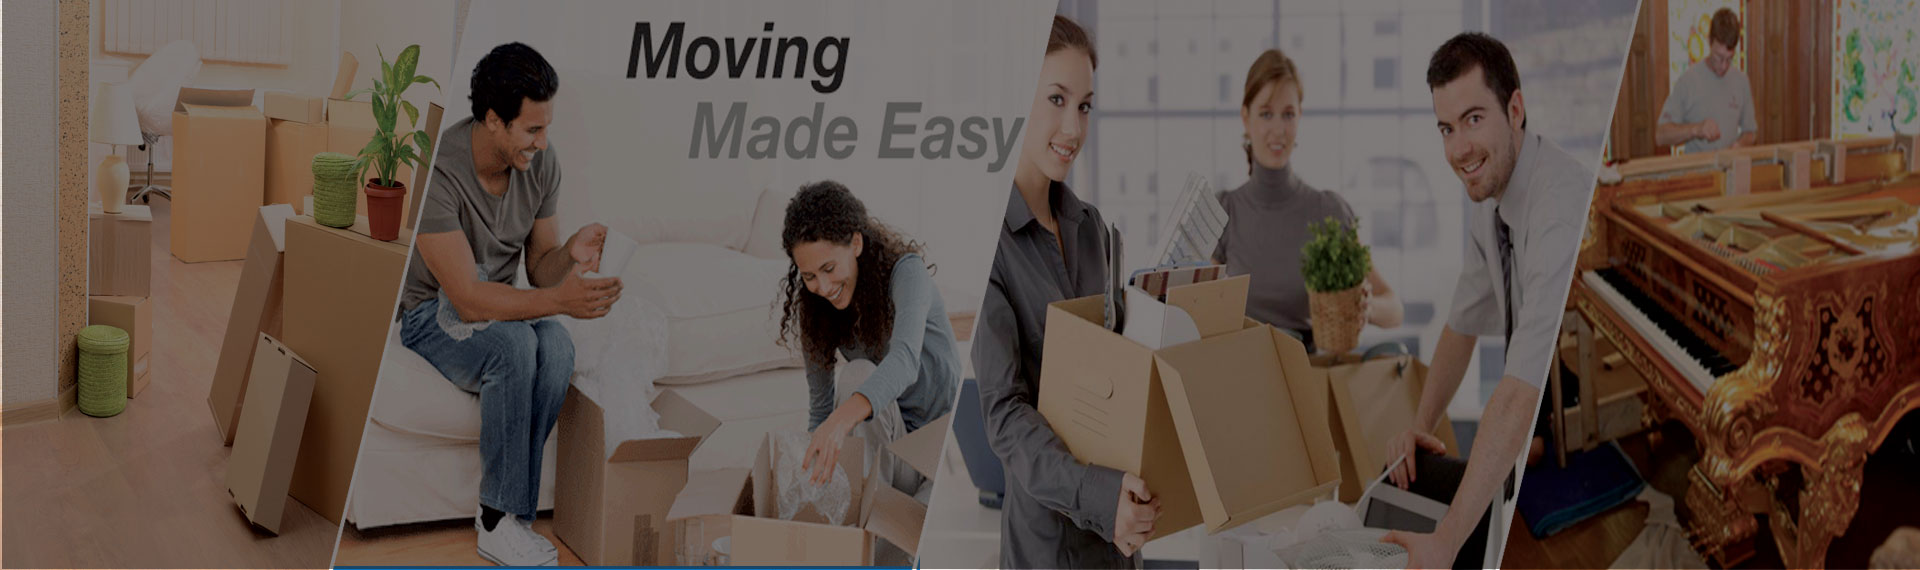 JV Moving Corp Brooklyn NY